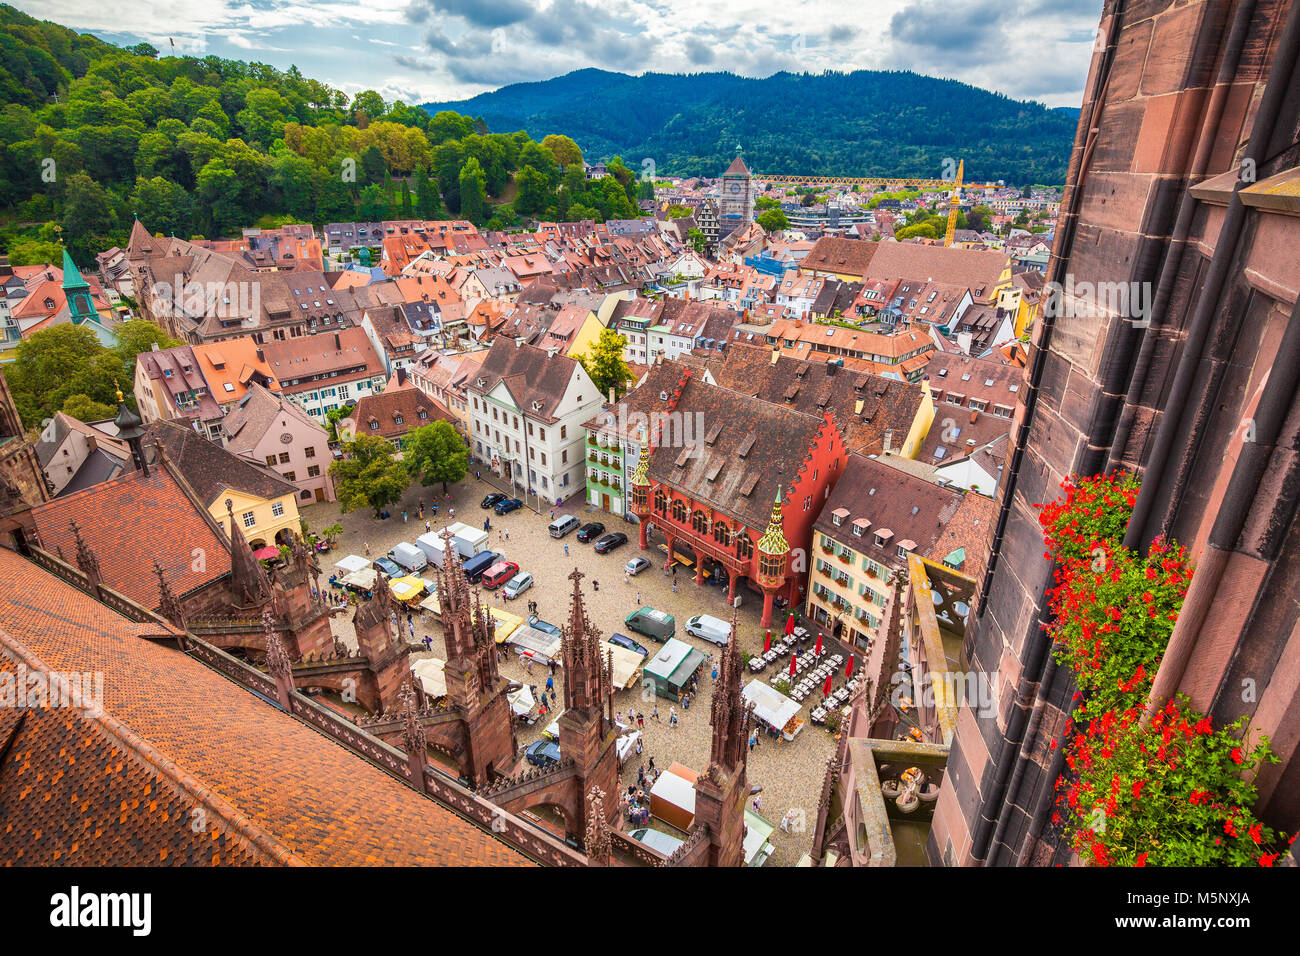 Aerial view of the historic city center of Freiburg im Breisgau from famous Freiburger Minster in beautiful evening - Stock Image